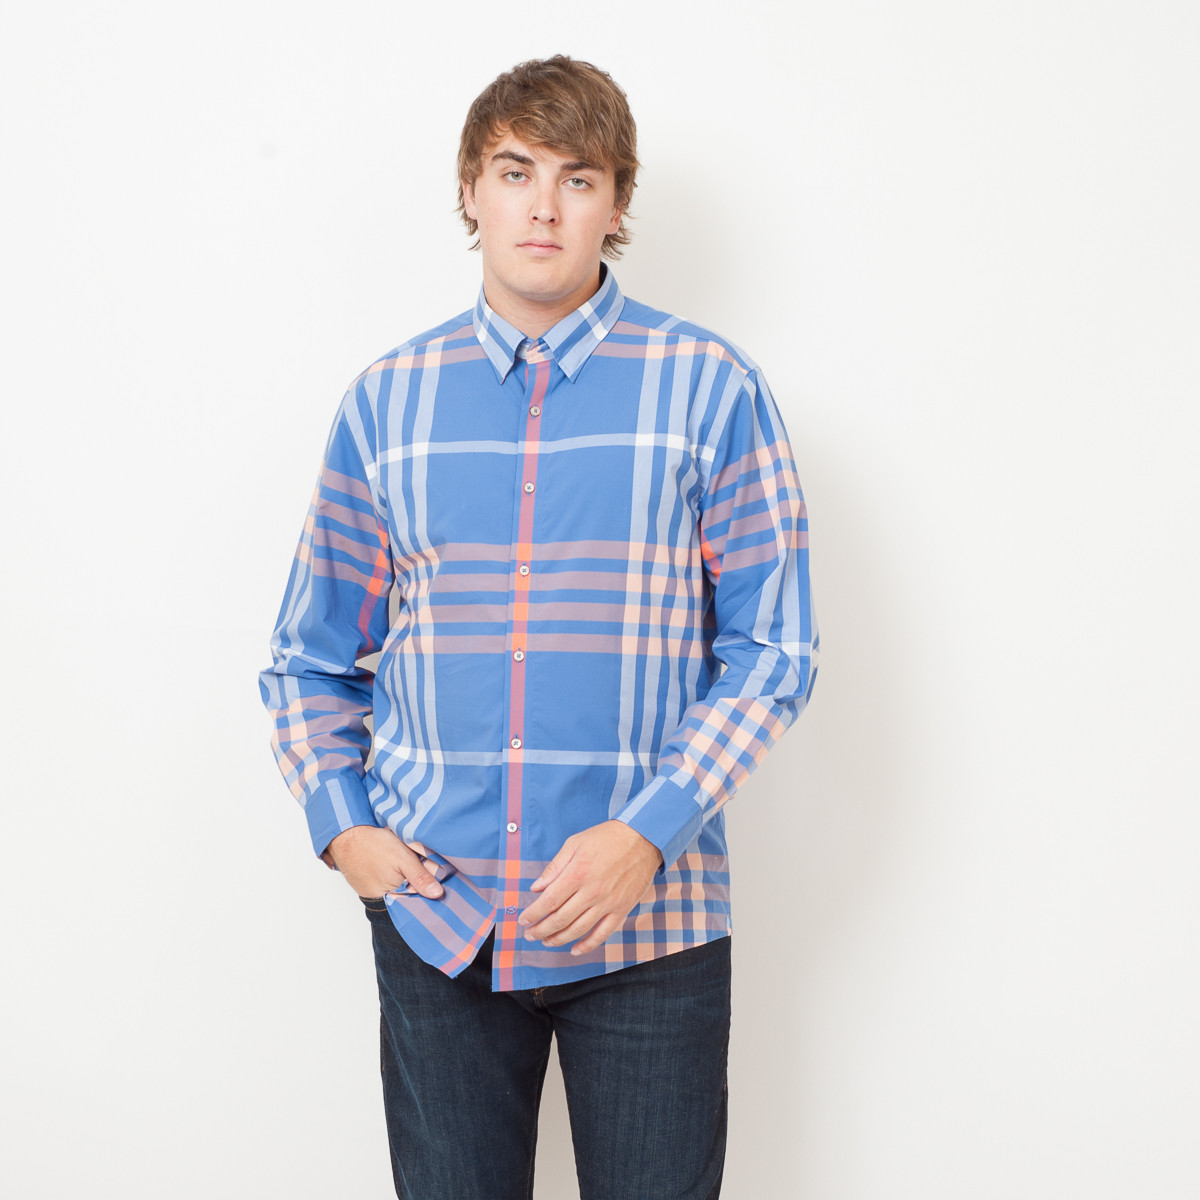 Guide for Purchasing a Long Sleeves Polo Shirt for Men